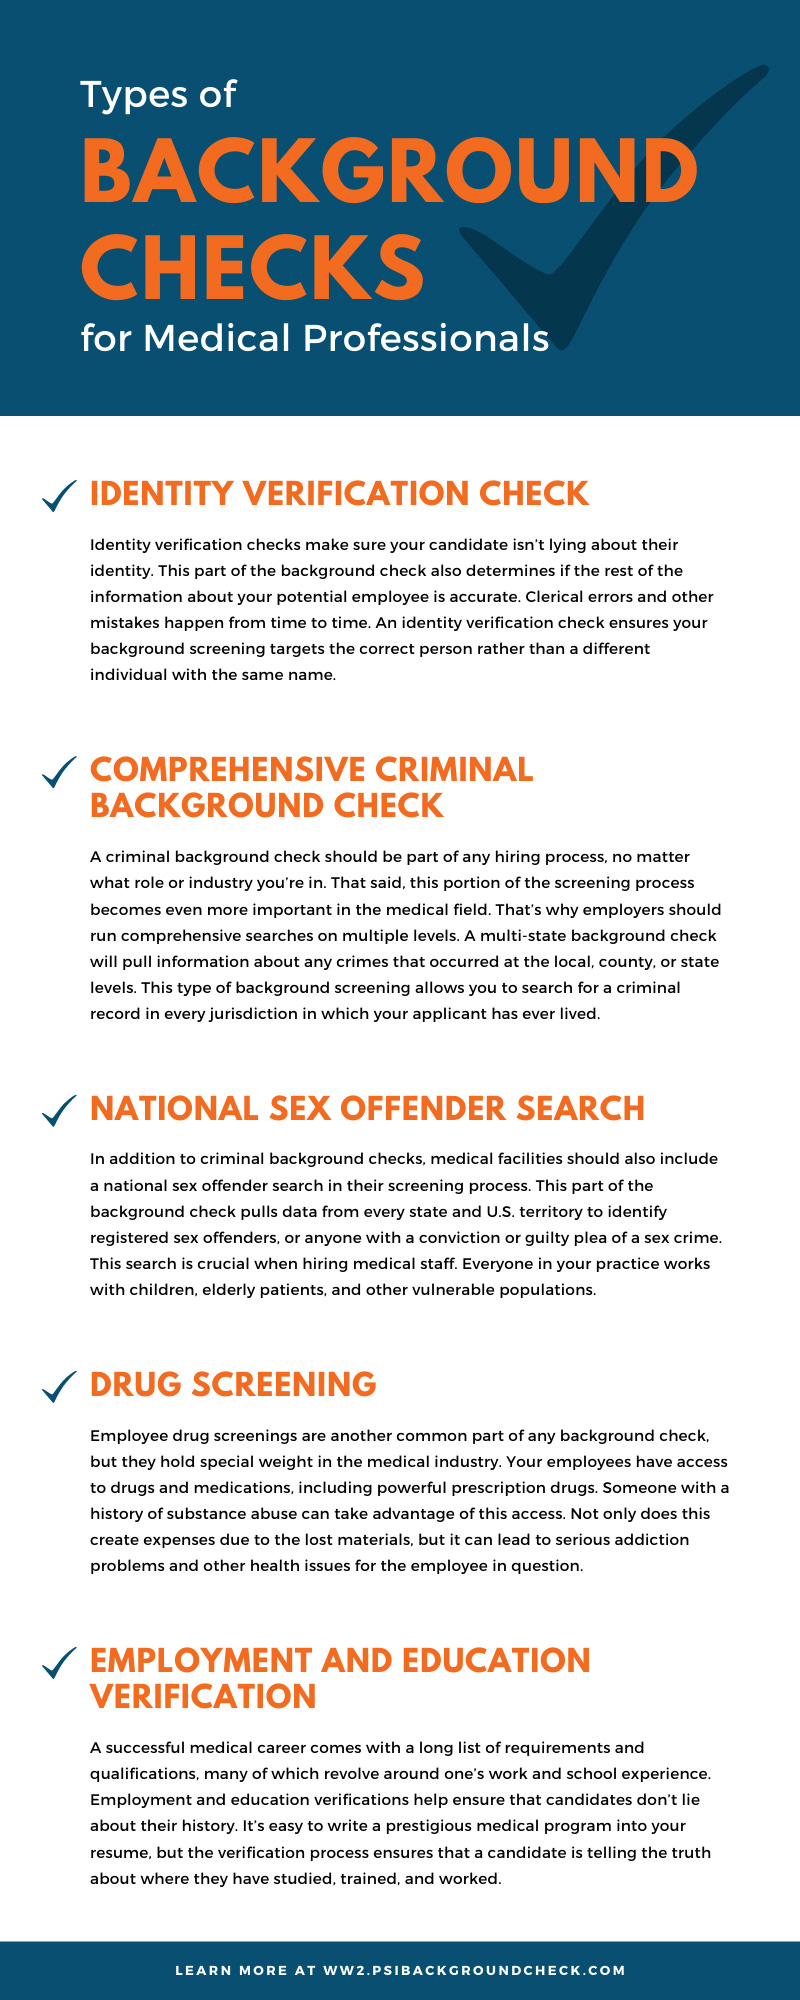 Types of Background Checks for Medical Professionals